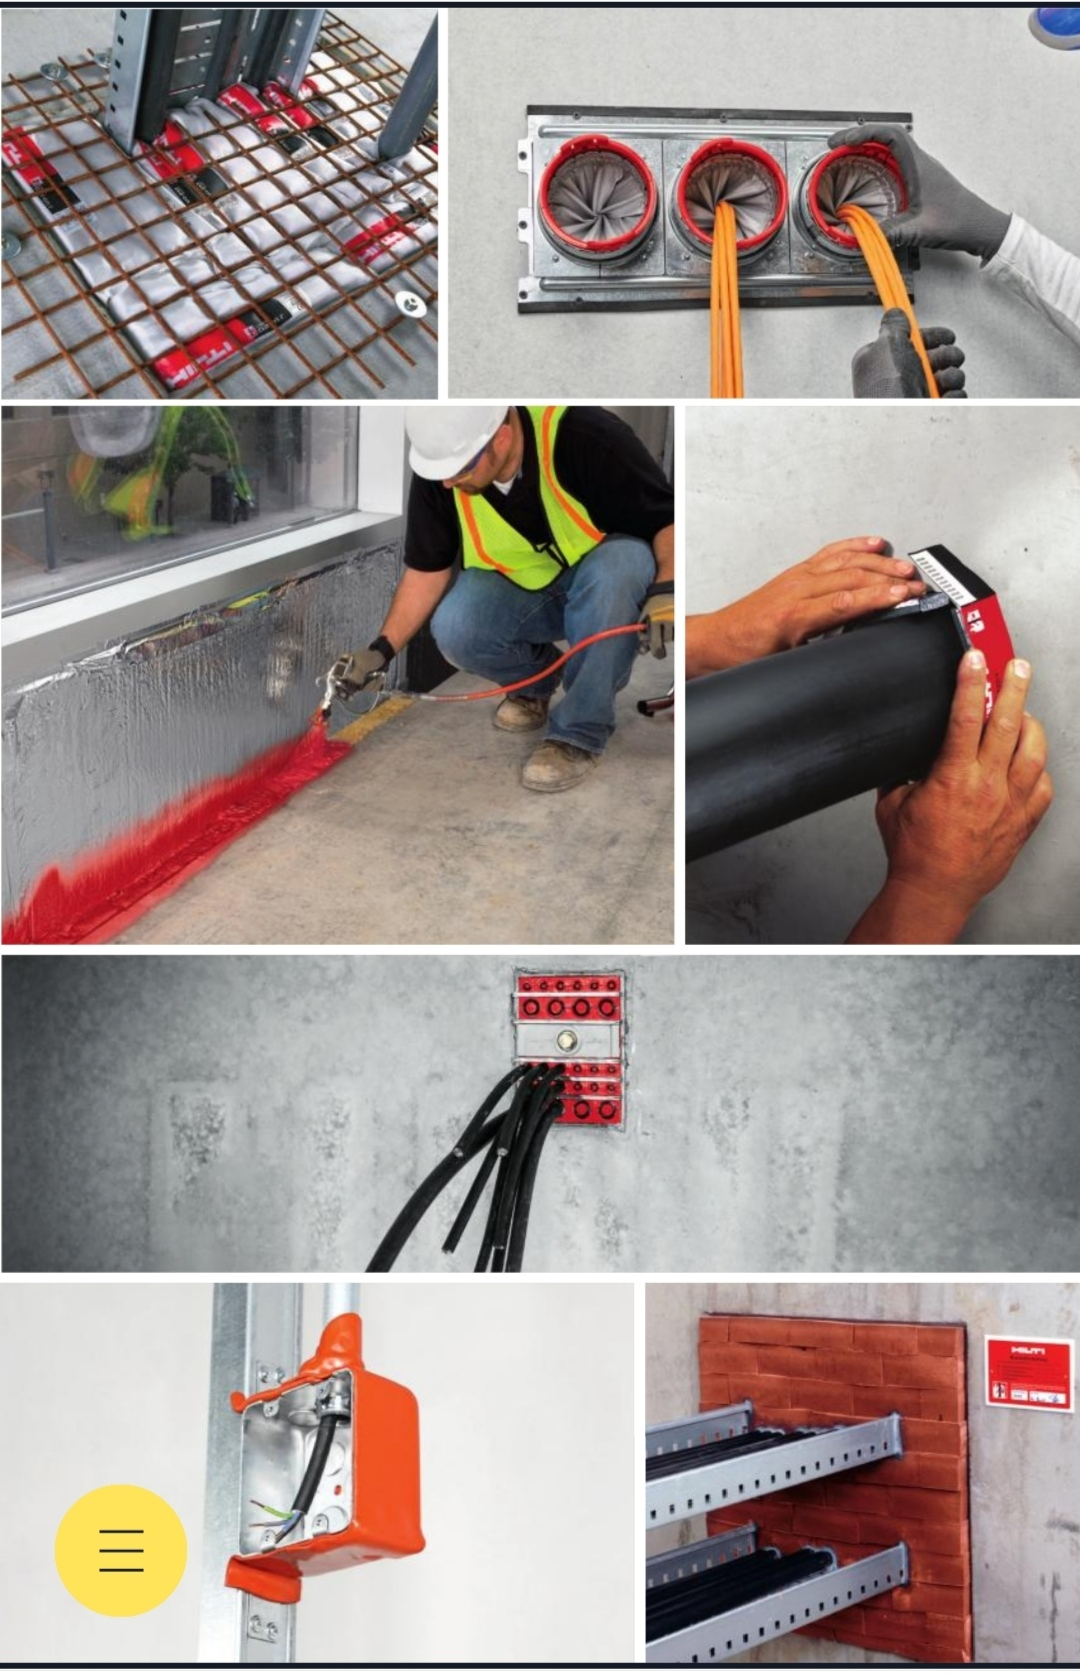 Hilti Passive Fire Protection System